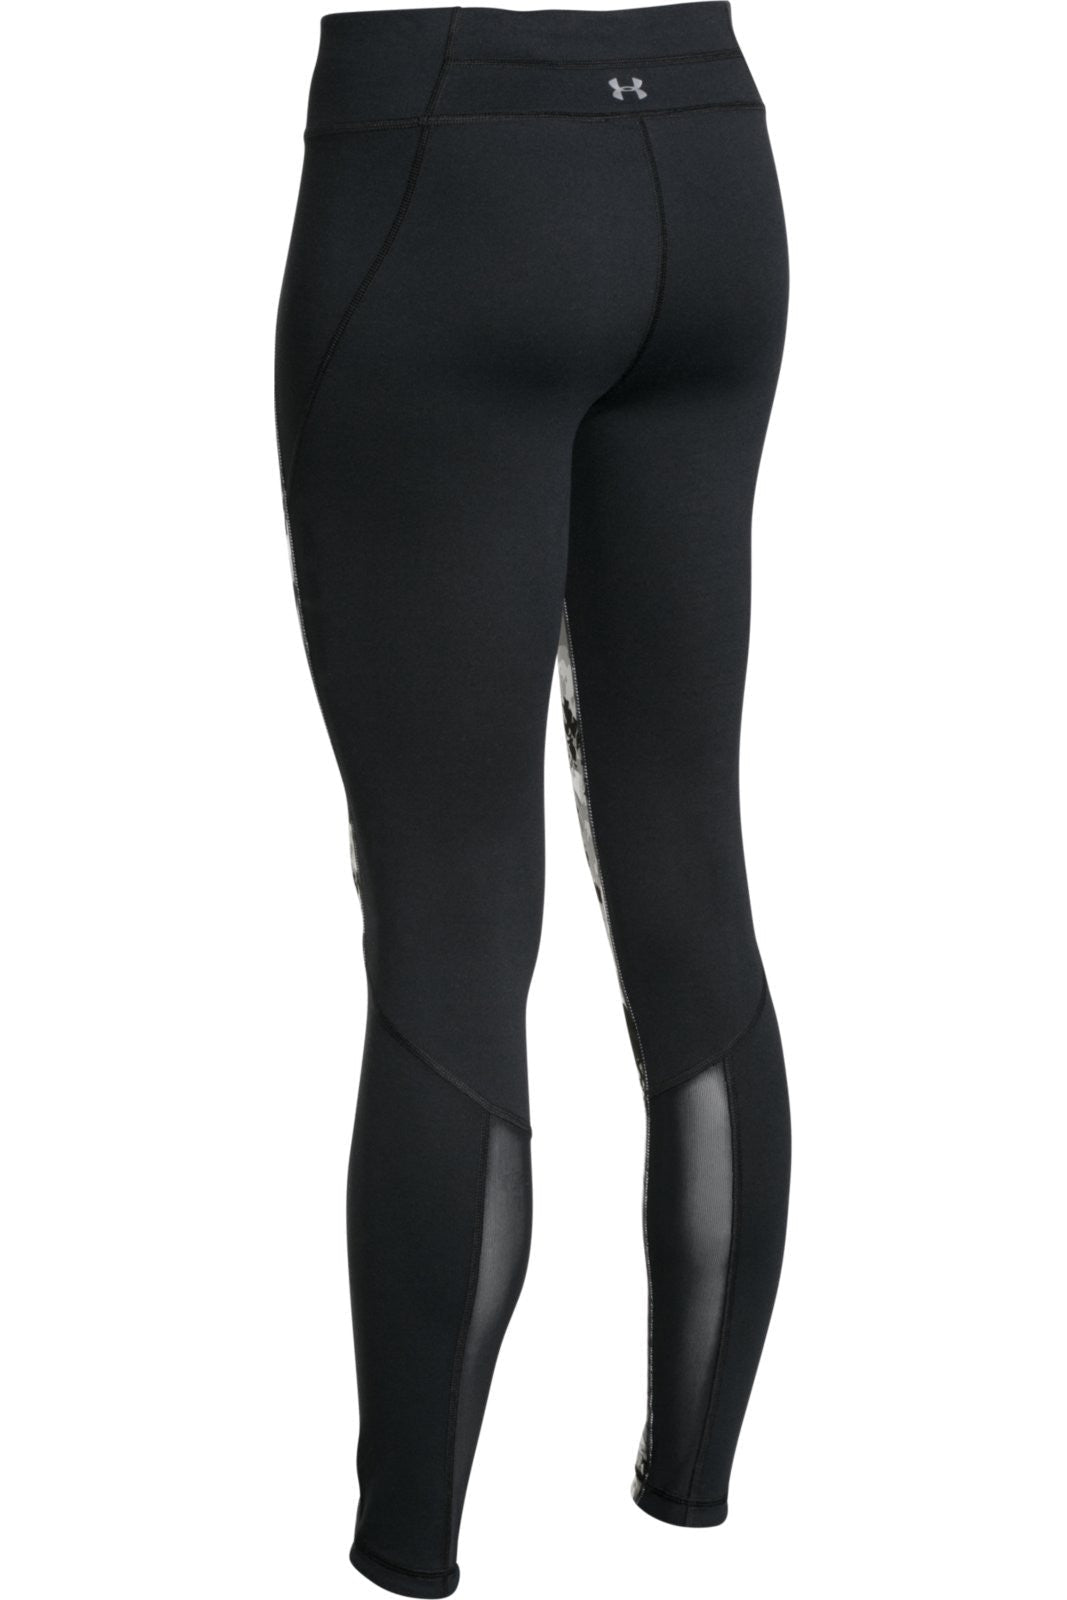 Under Armour UA Mirror Printed Legging - Black/Silver Camo image 4